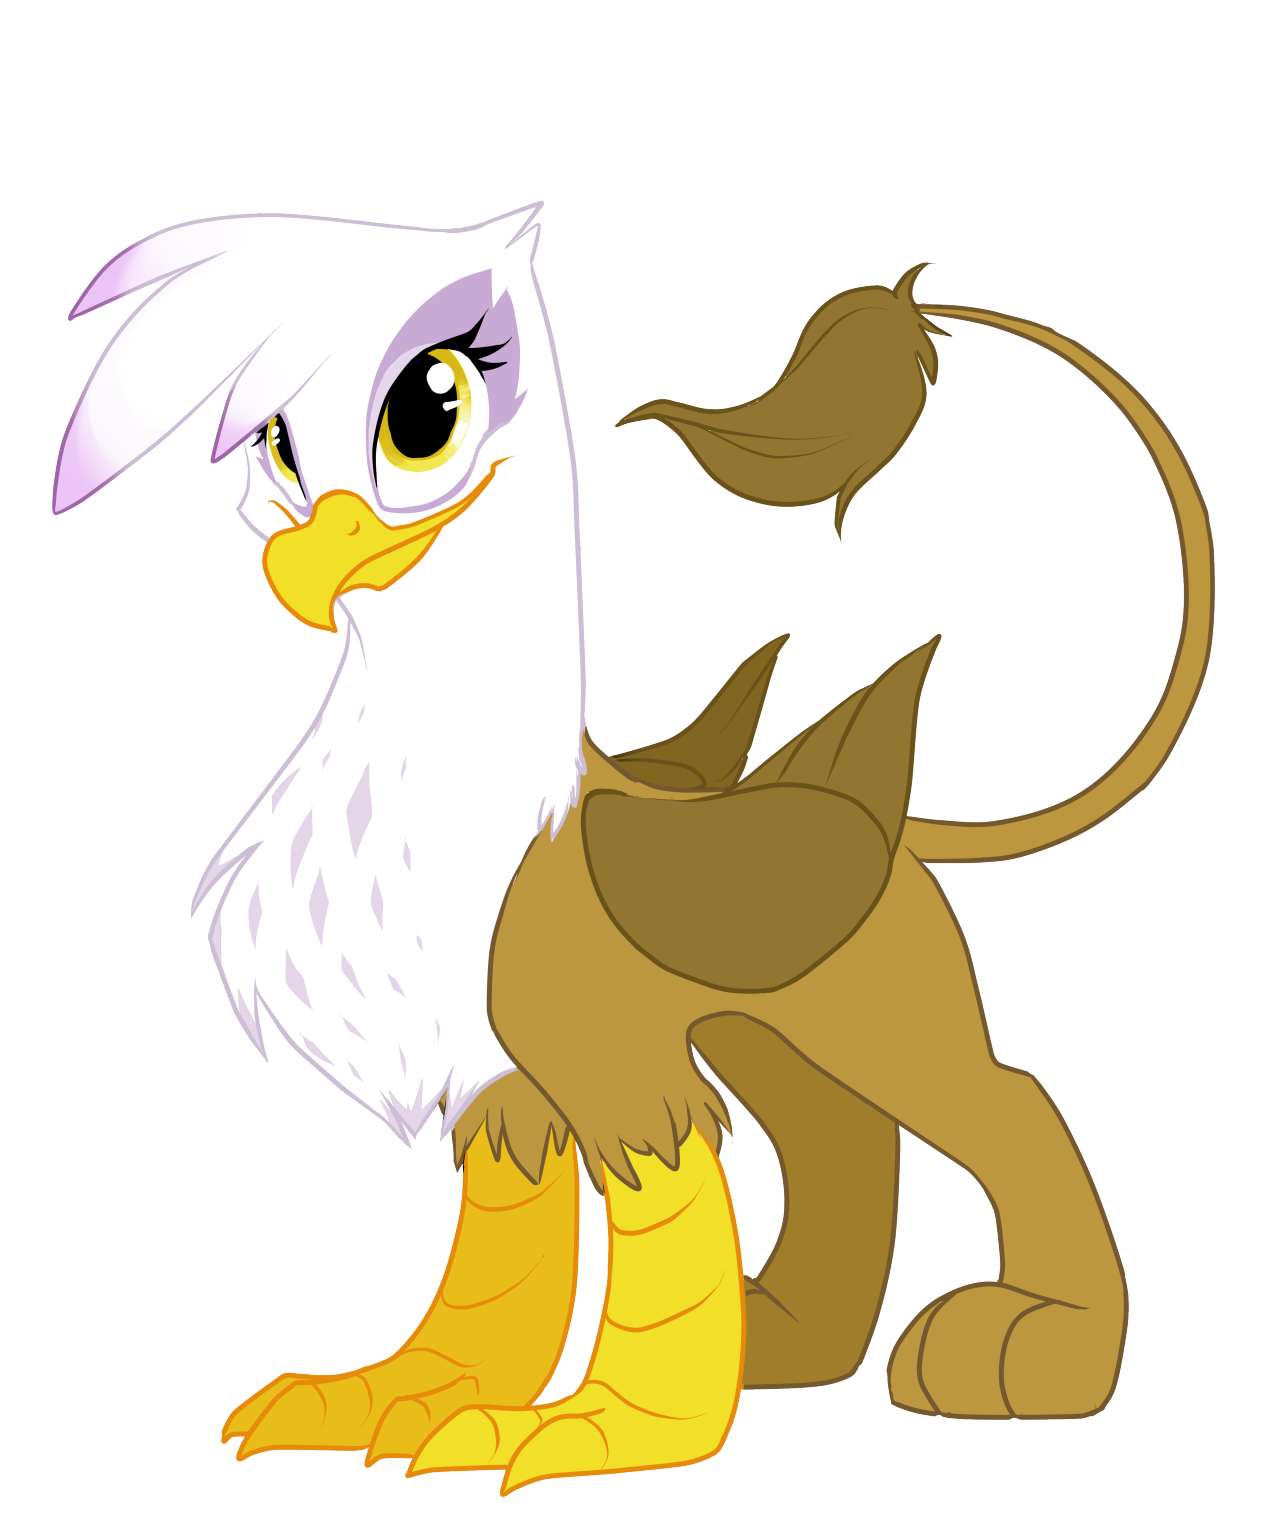 askfordoodles:  More Gilda; because she may be a total douche, but her design was cool.